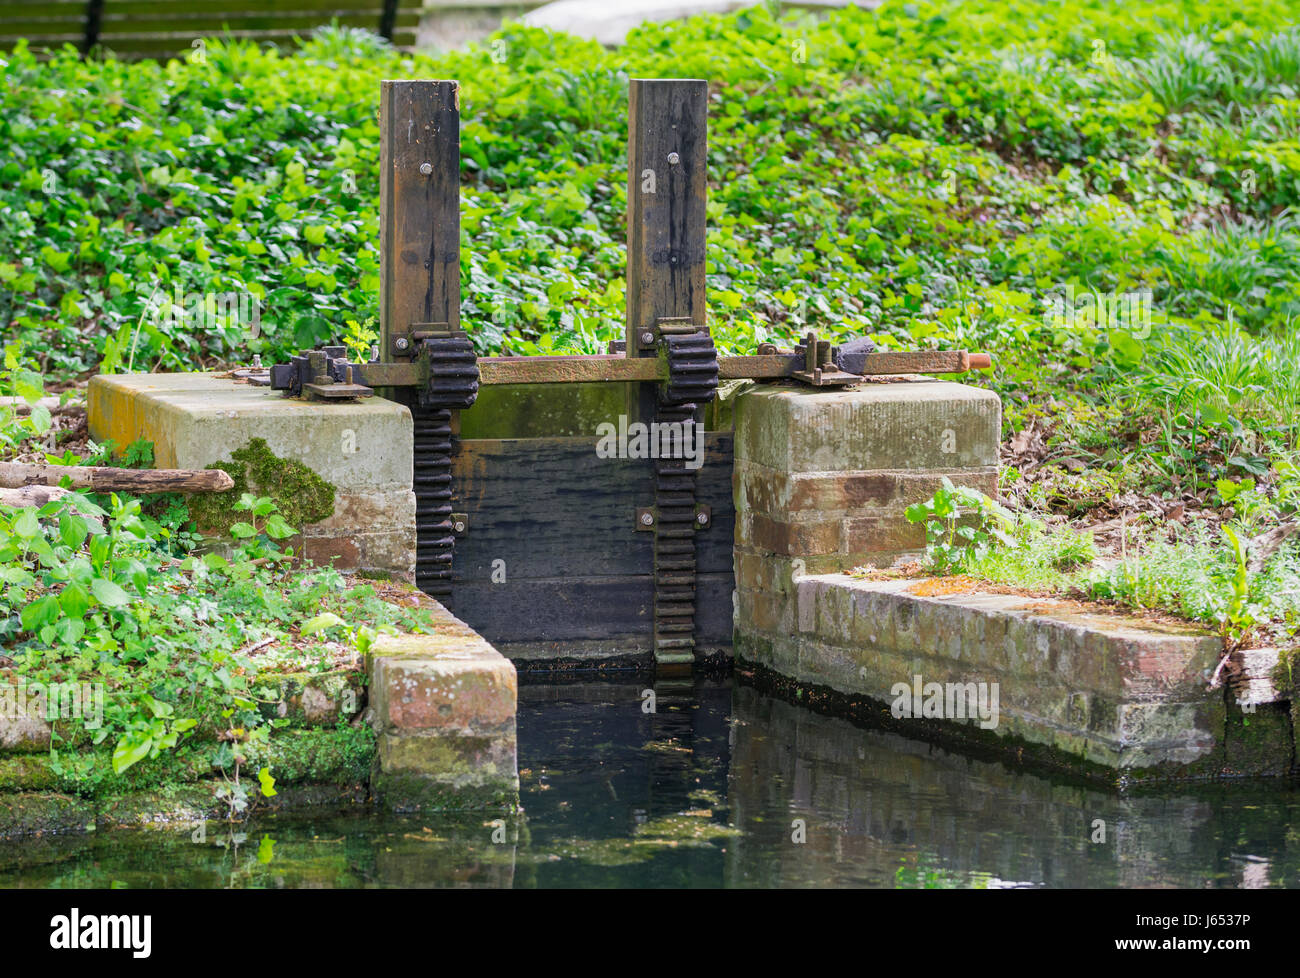 Sluice gate. Small old water sluice gate in the countryside. - Stock Image